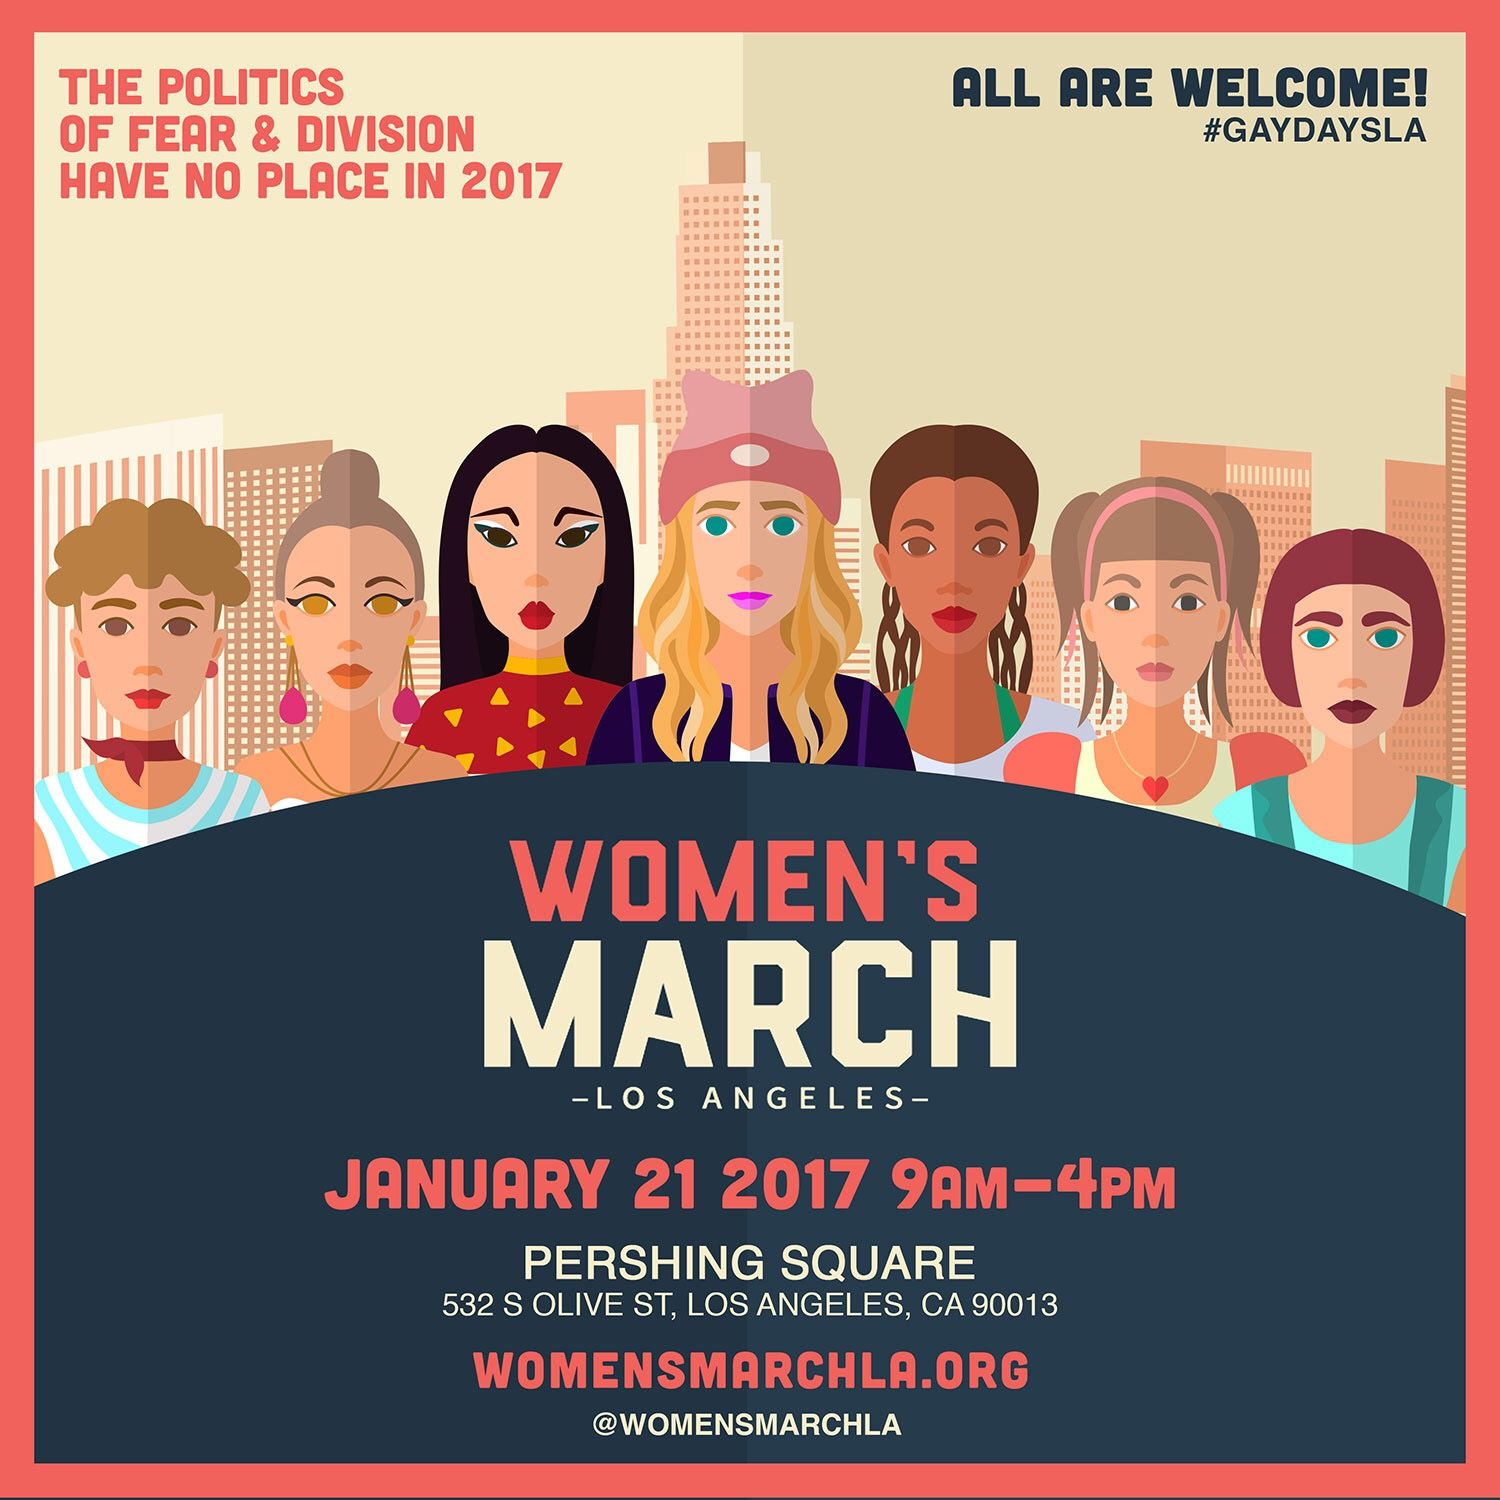 Women's March Los Angeles Ad by JB Design Studio for Gay Days Los Angeles